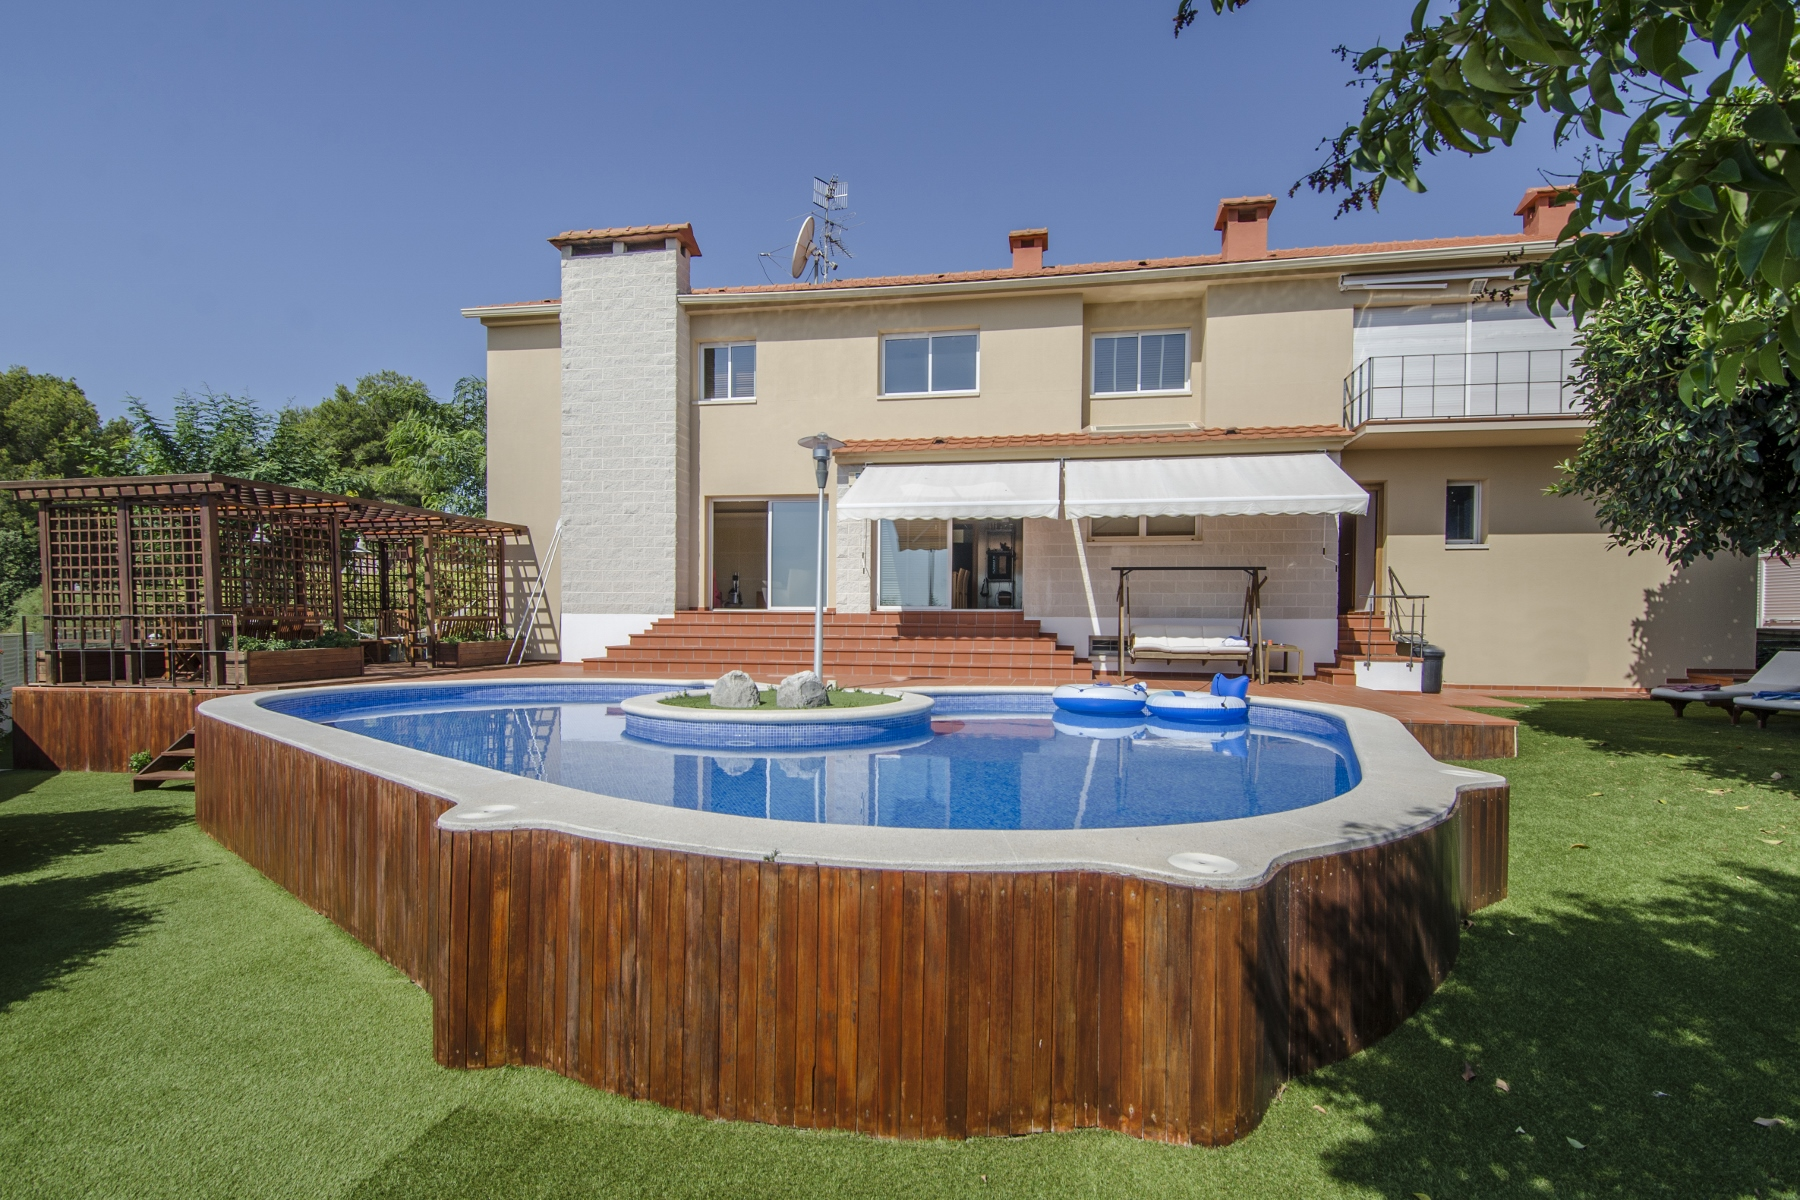 Single Family Home for Sale at Modern Designer House Situated in Santa Bárbara Sitges Sitges, Barcelona, 08870 Spain